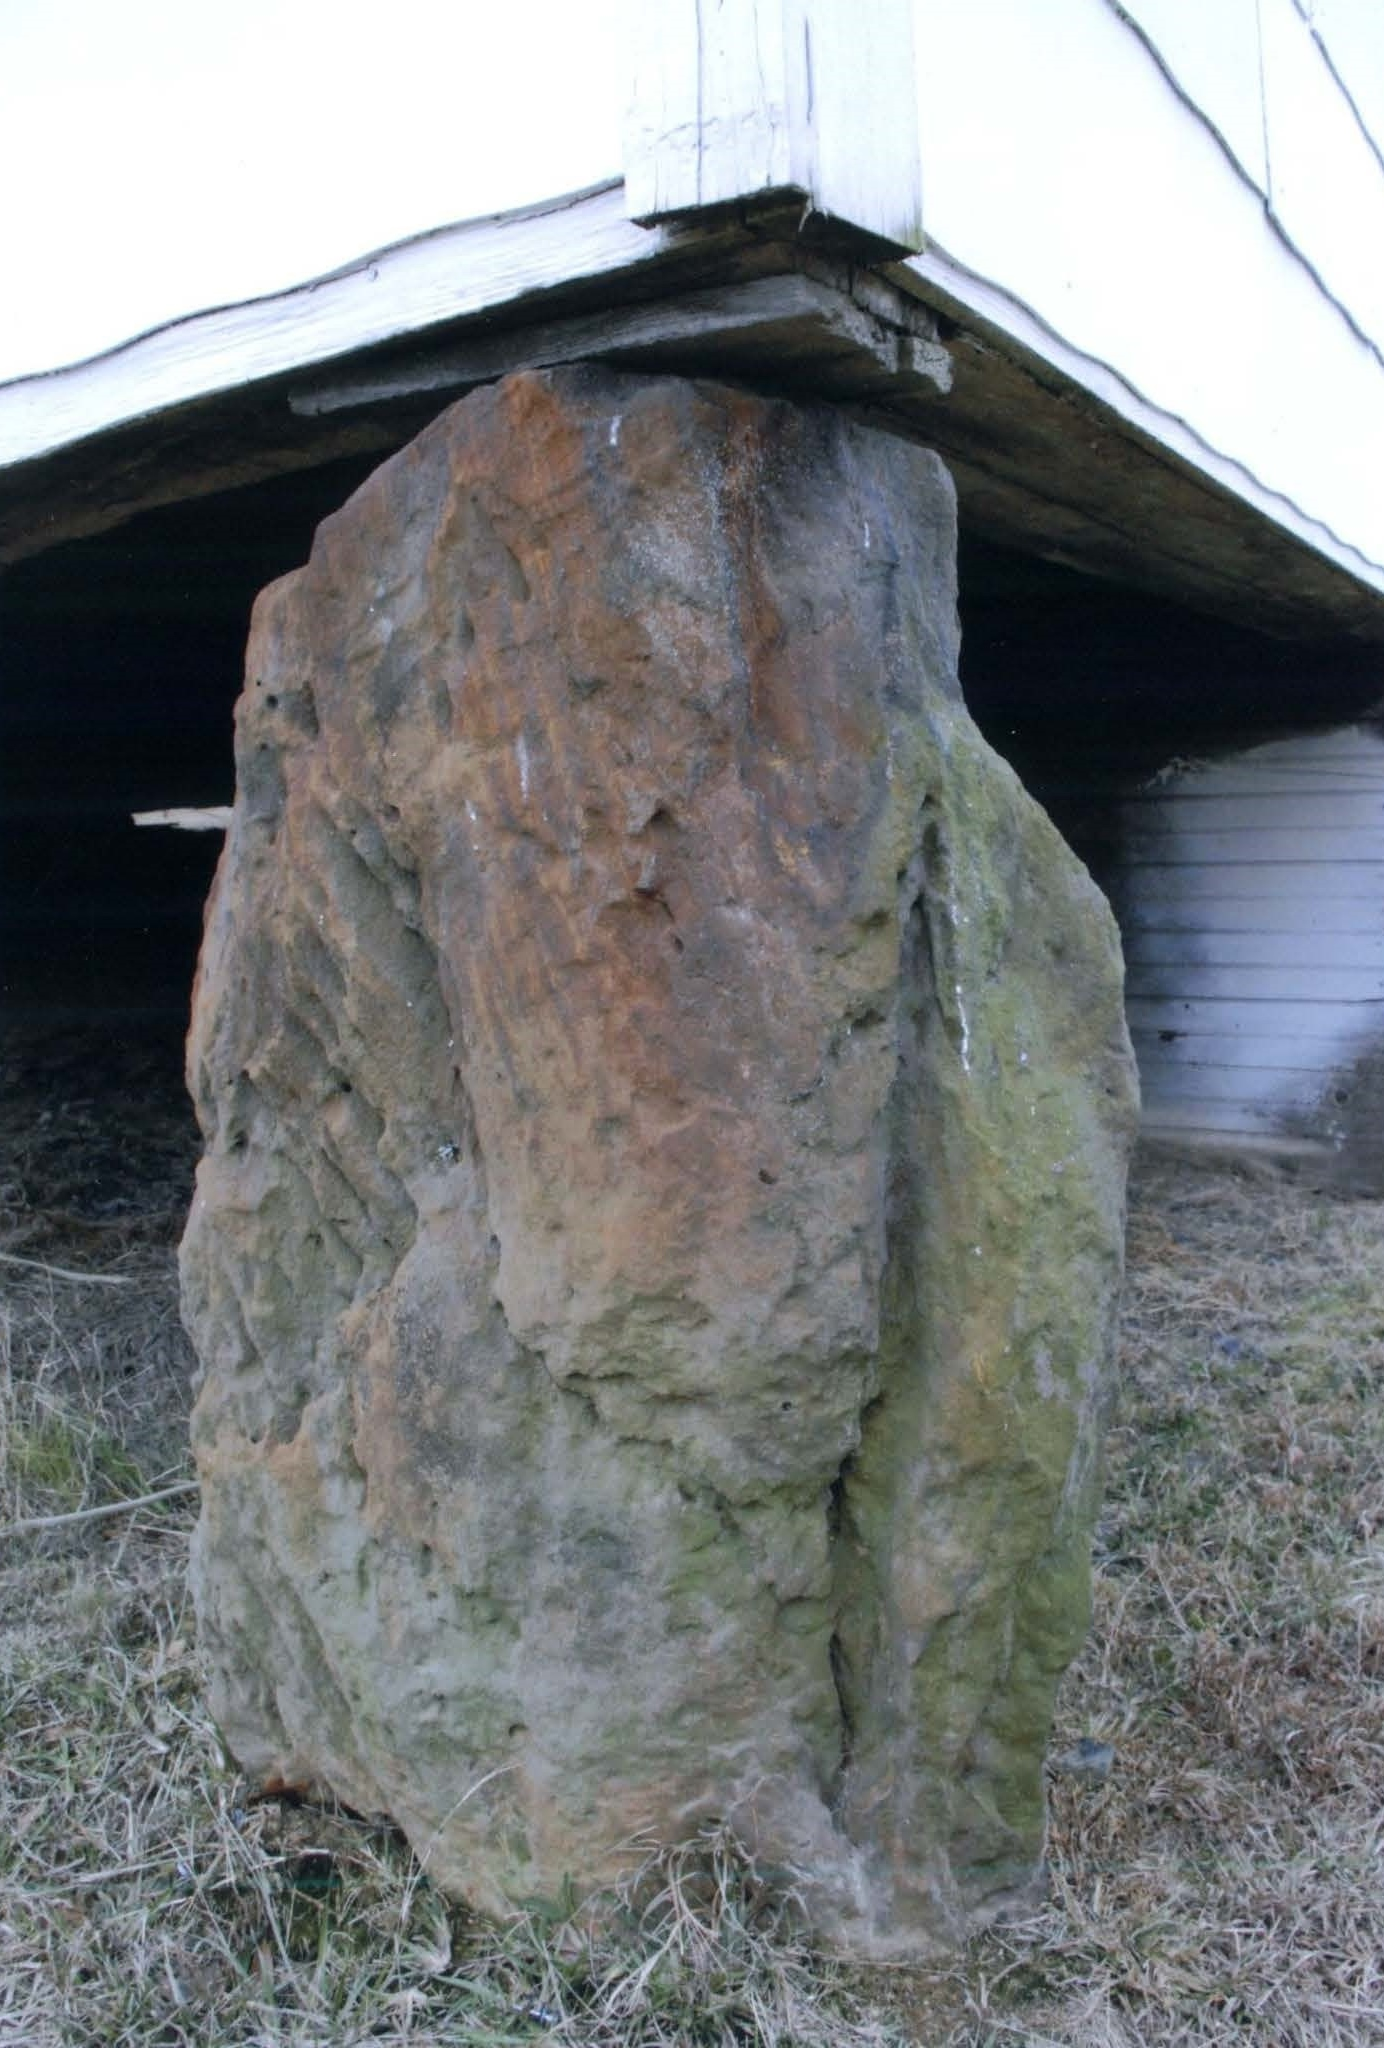 One of the boulders that the building rests one.